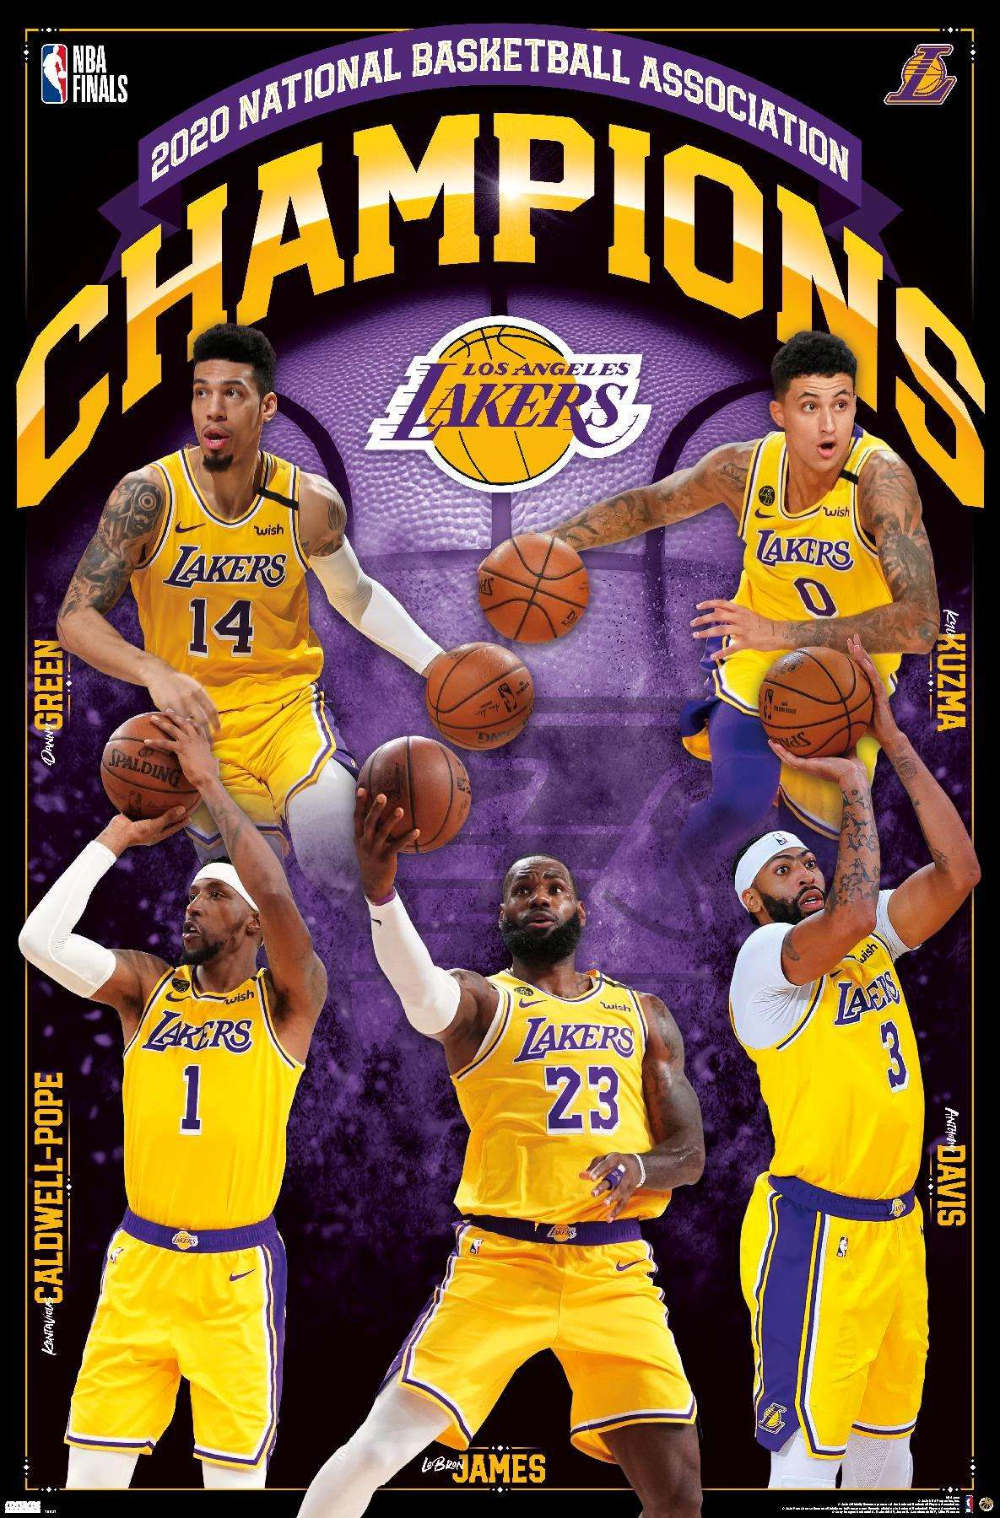 Nba Los Angeles Lakers 2020 Nba Finals Champions In 2020 Nba Finals Nba Los Angeles Nba